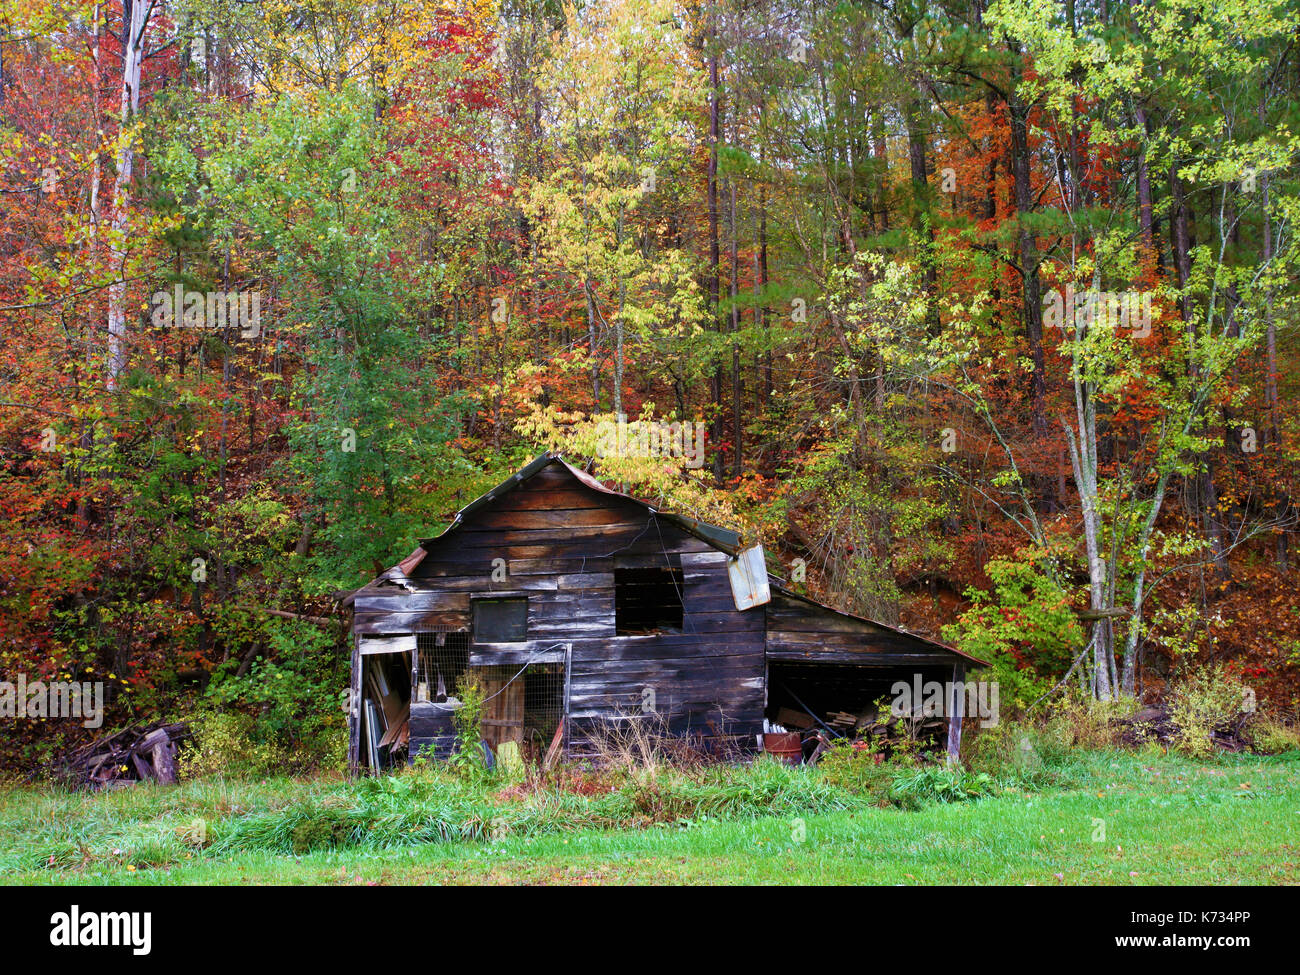 A view of  an old wooden barn surrounded by colorful trees in the middle of fall in Georgia, USA - Stock Image